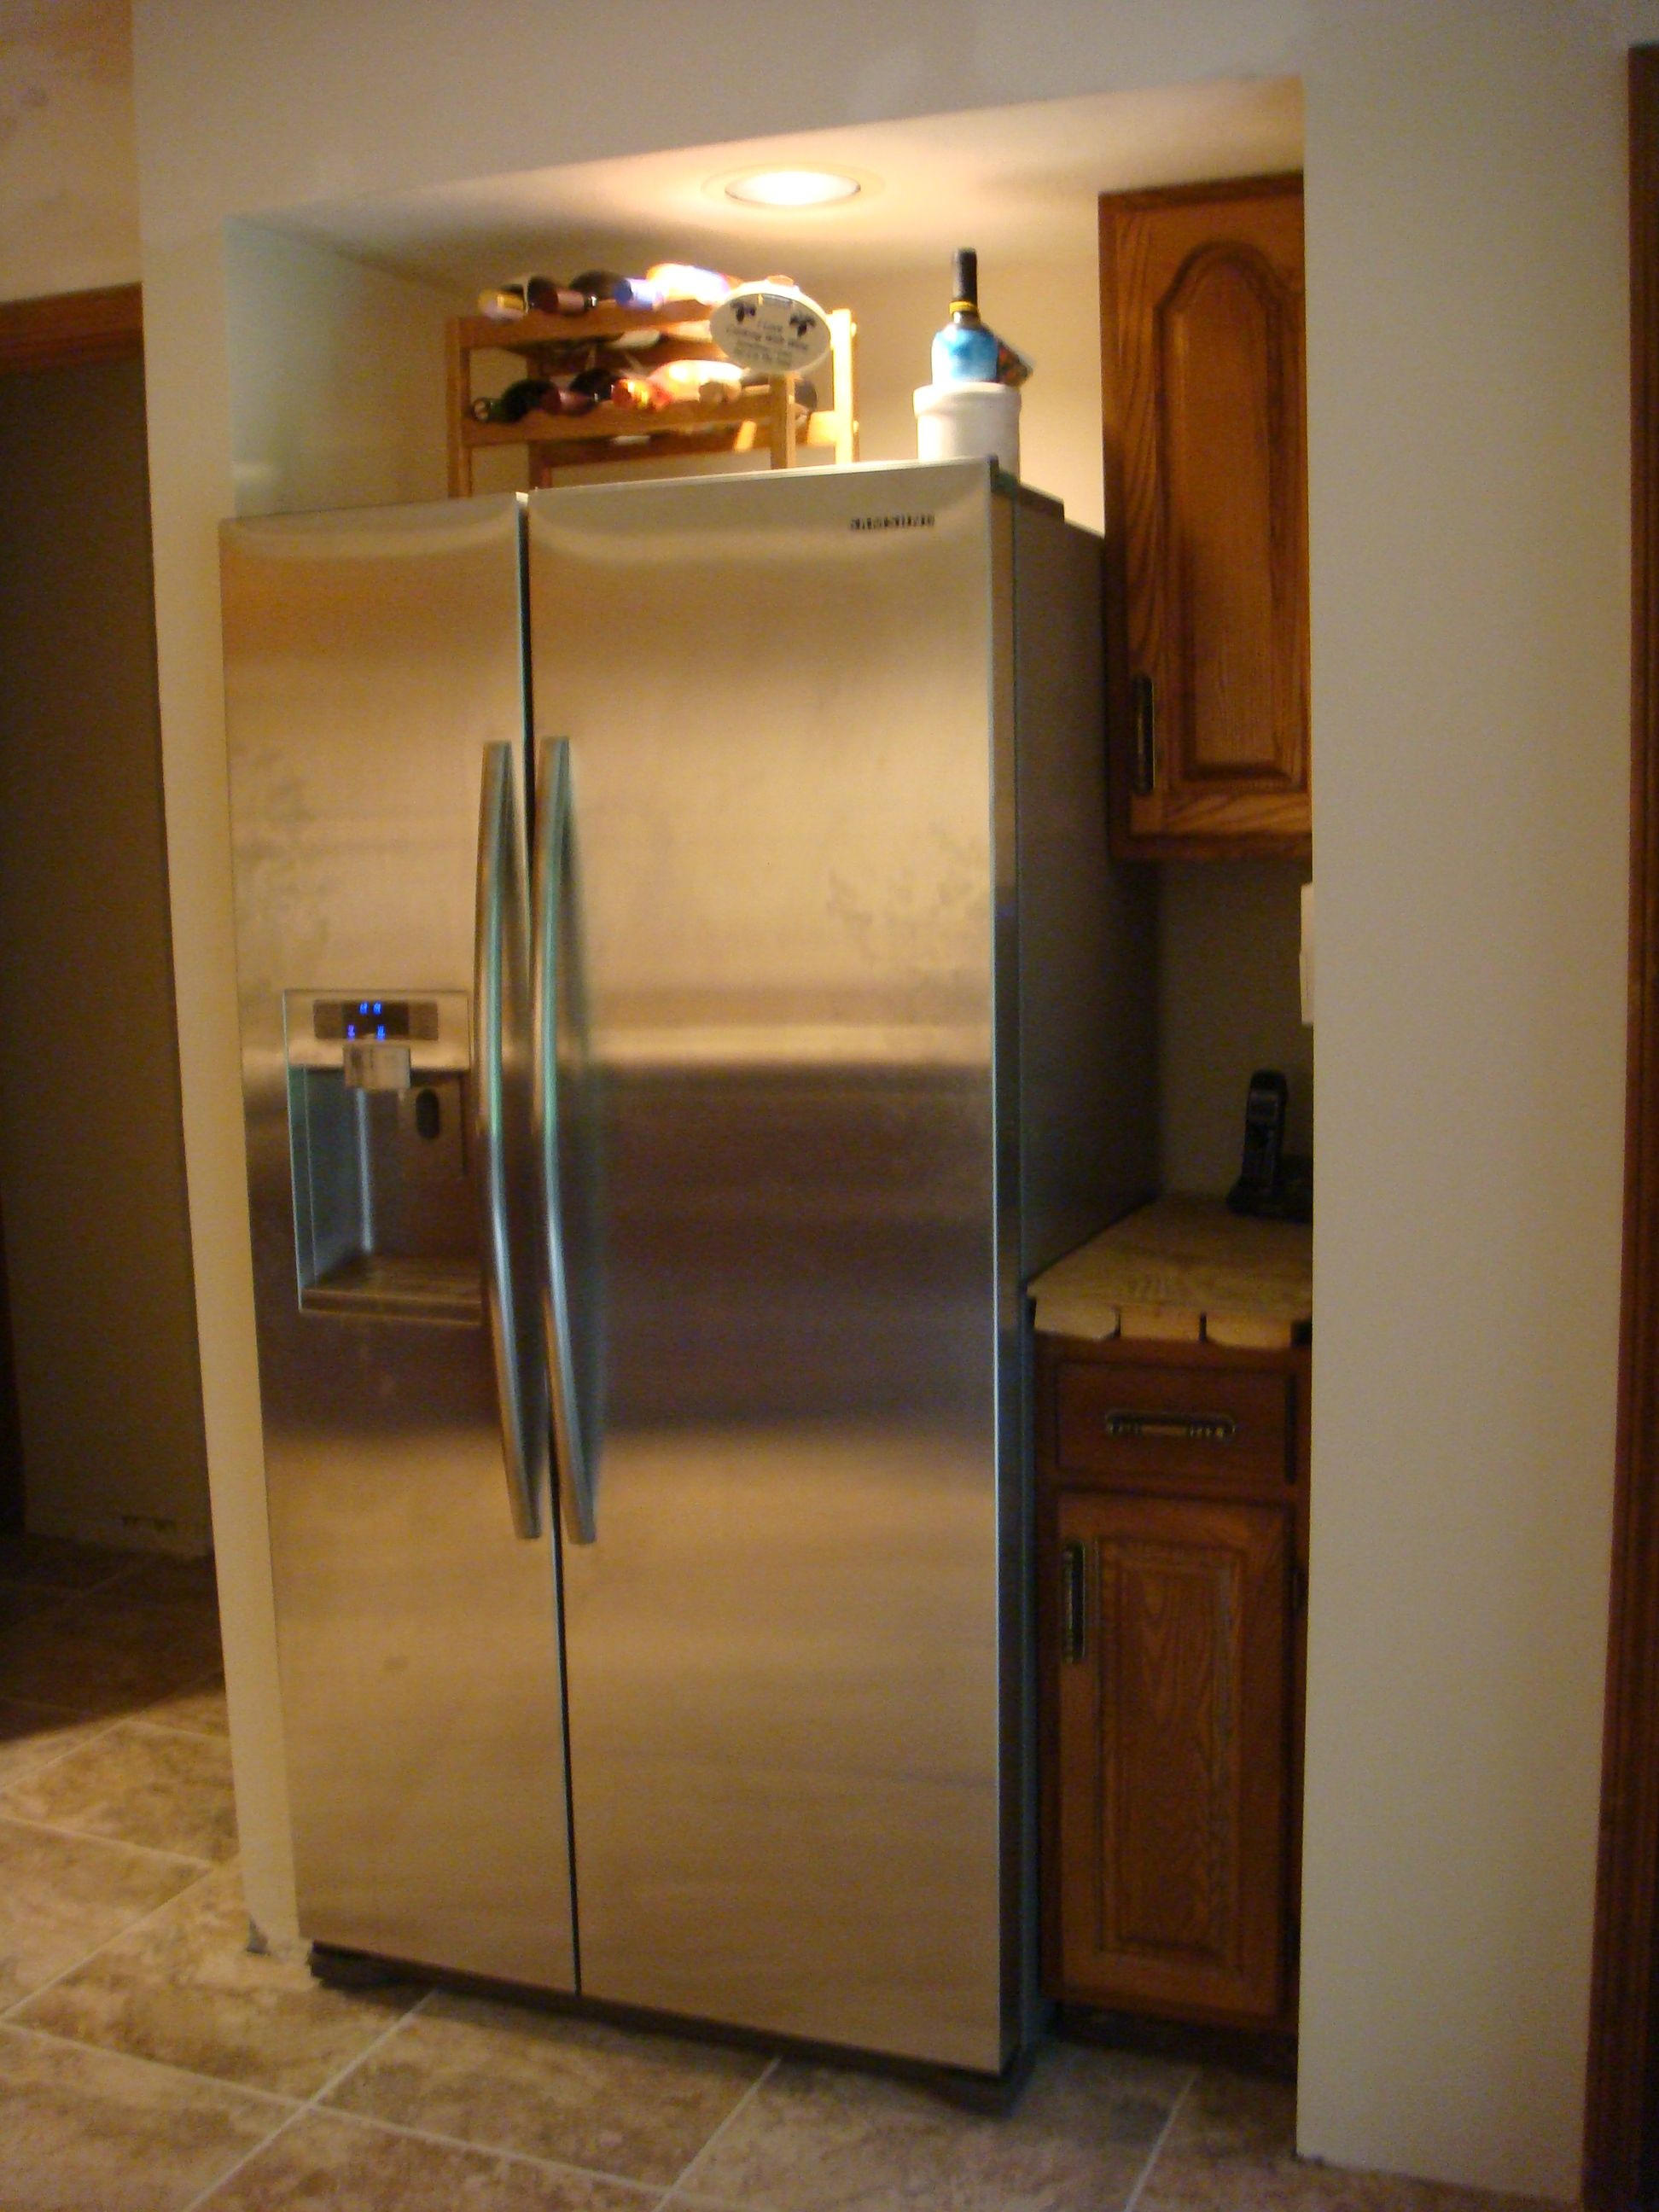 Kitchen Cabinets Around Refrigerator Cabinets Relocated Around Refrigerator Kitchen Remodel